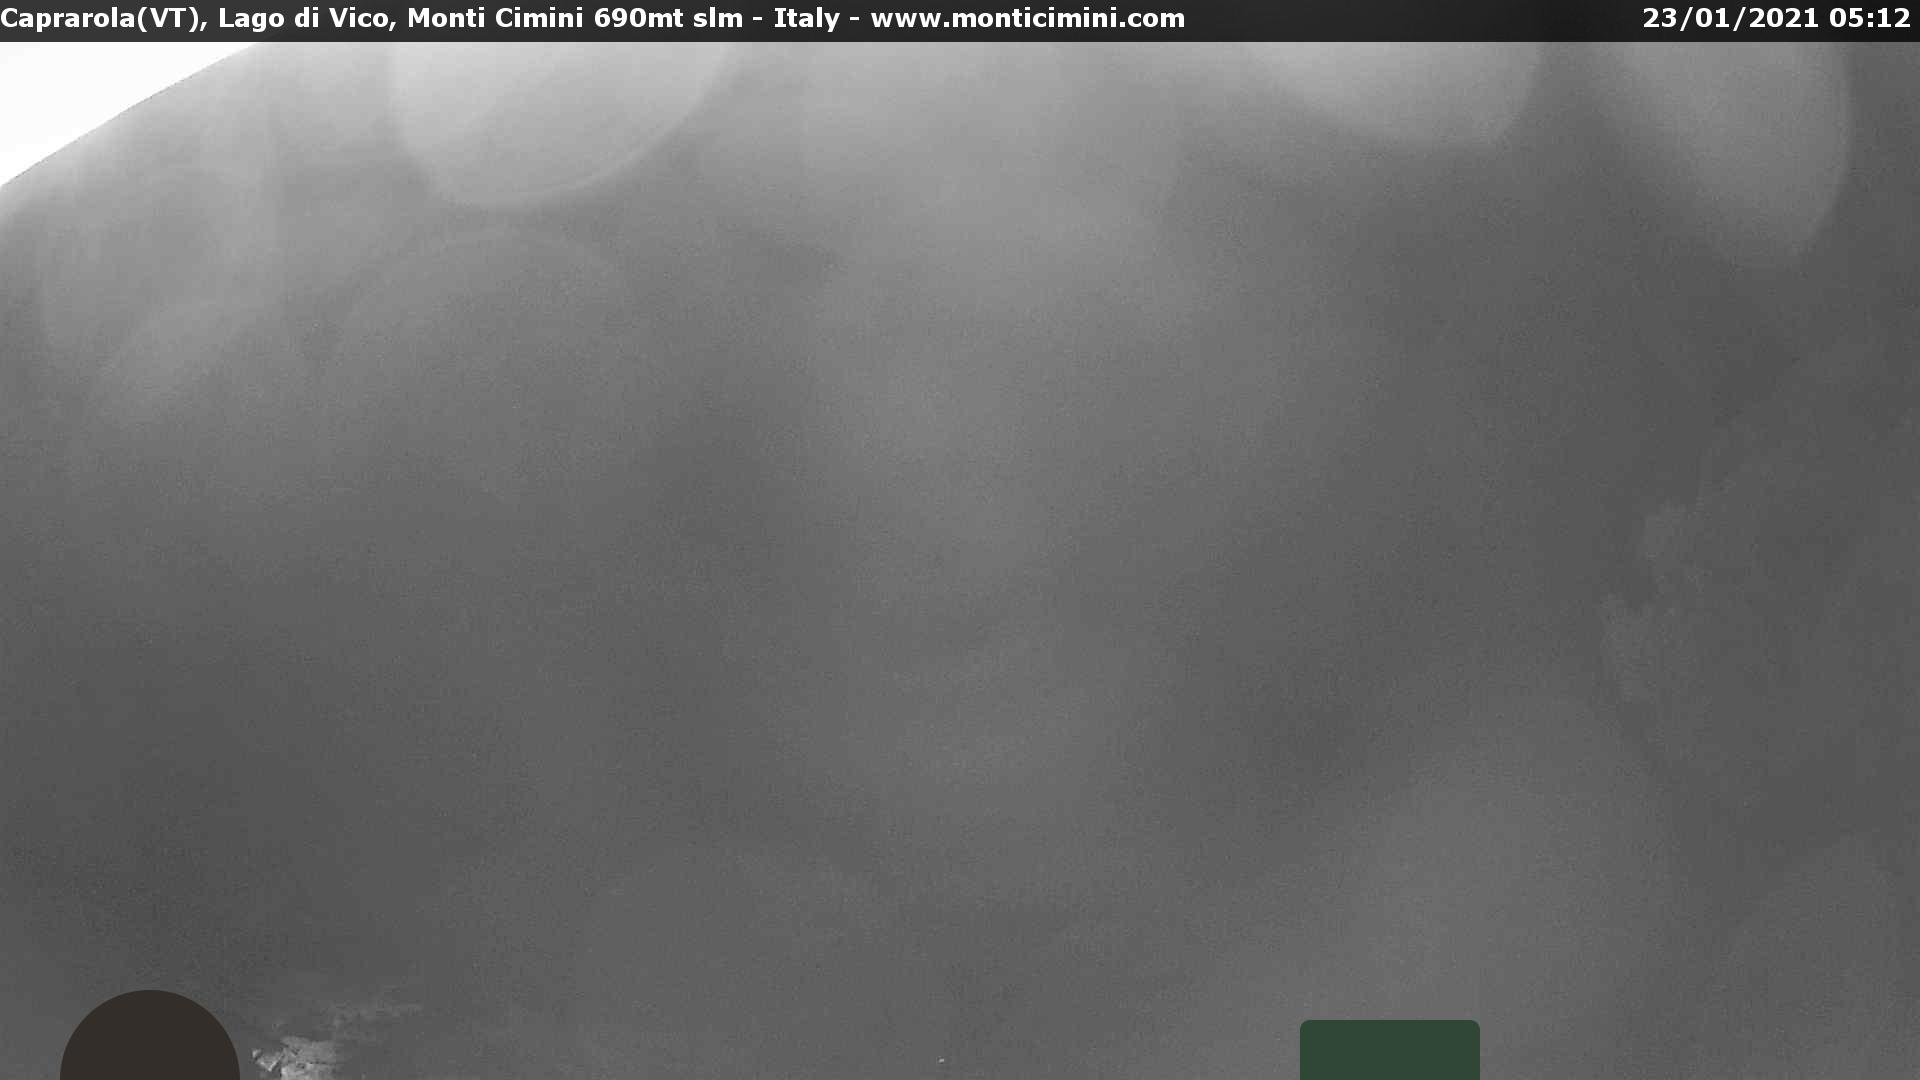 Webcam Caprarola VT Live webcamera